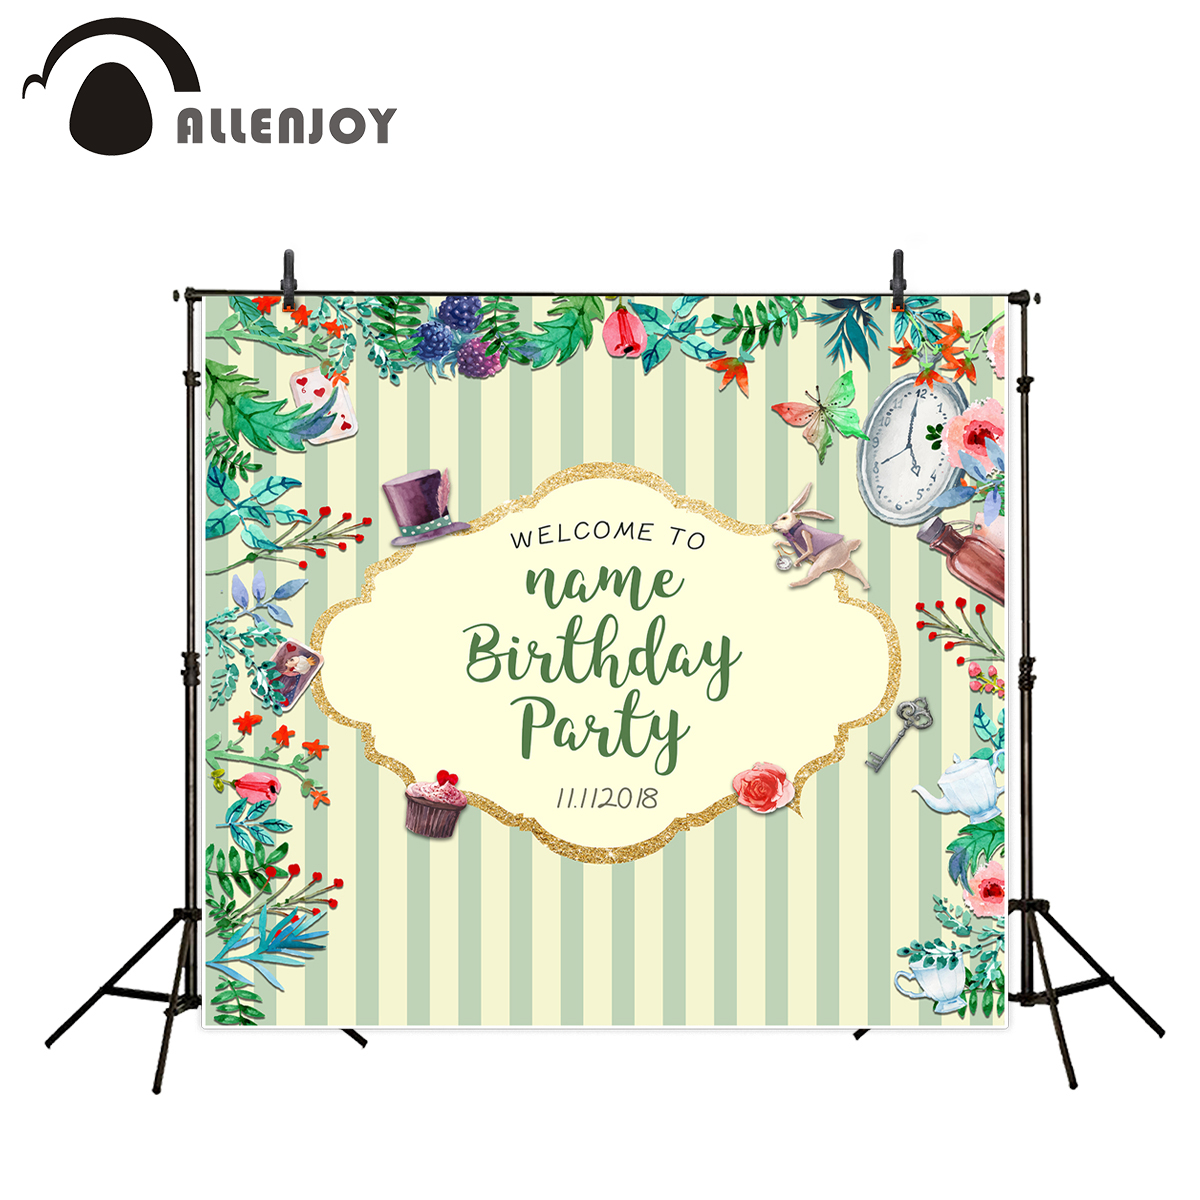 Allenjoy photographic background Alice Wonderland Dreamy Flower Party photography backdrops vinyl photography backdrops